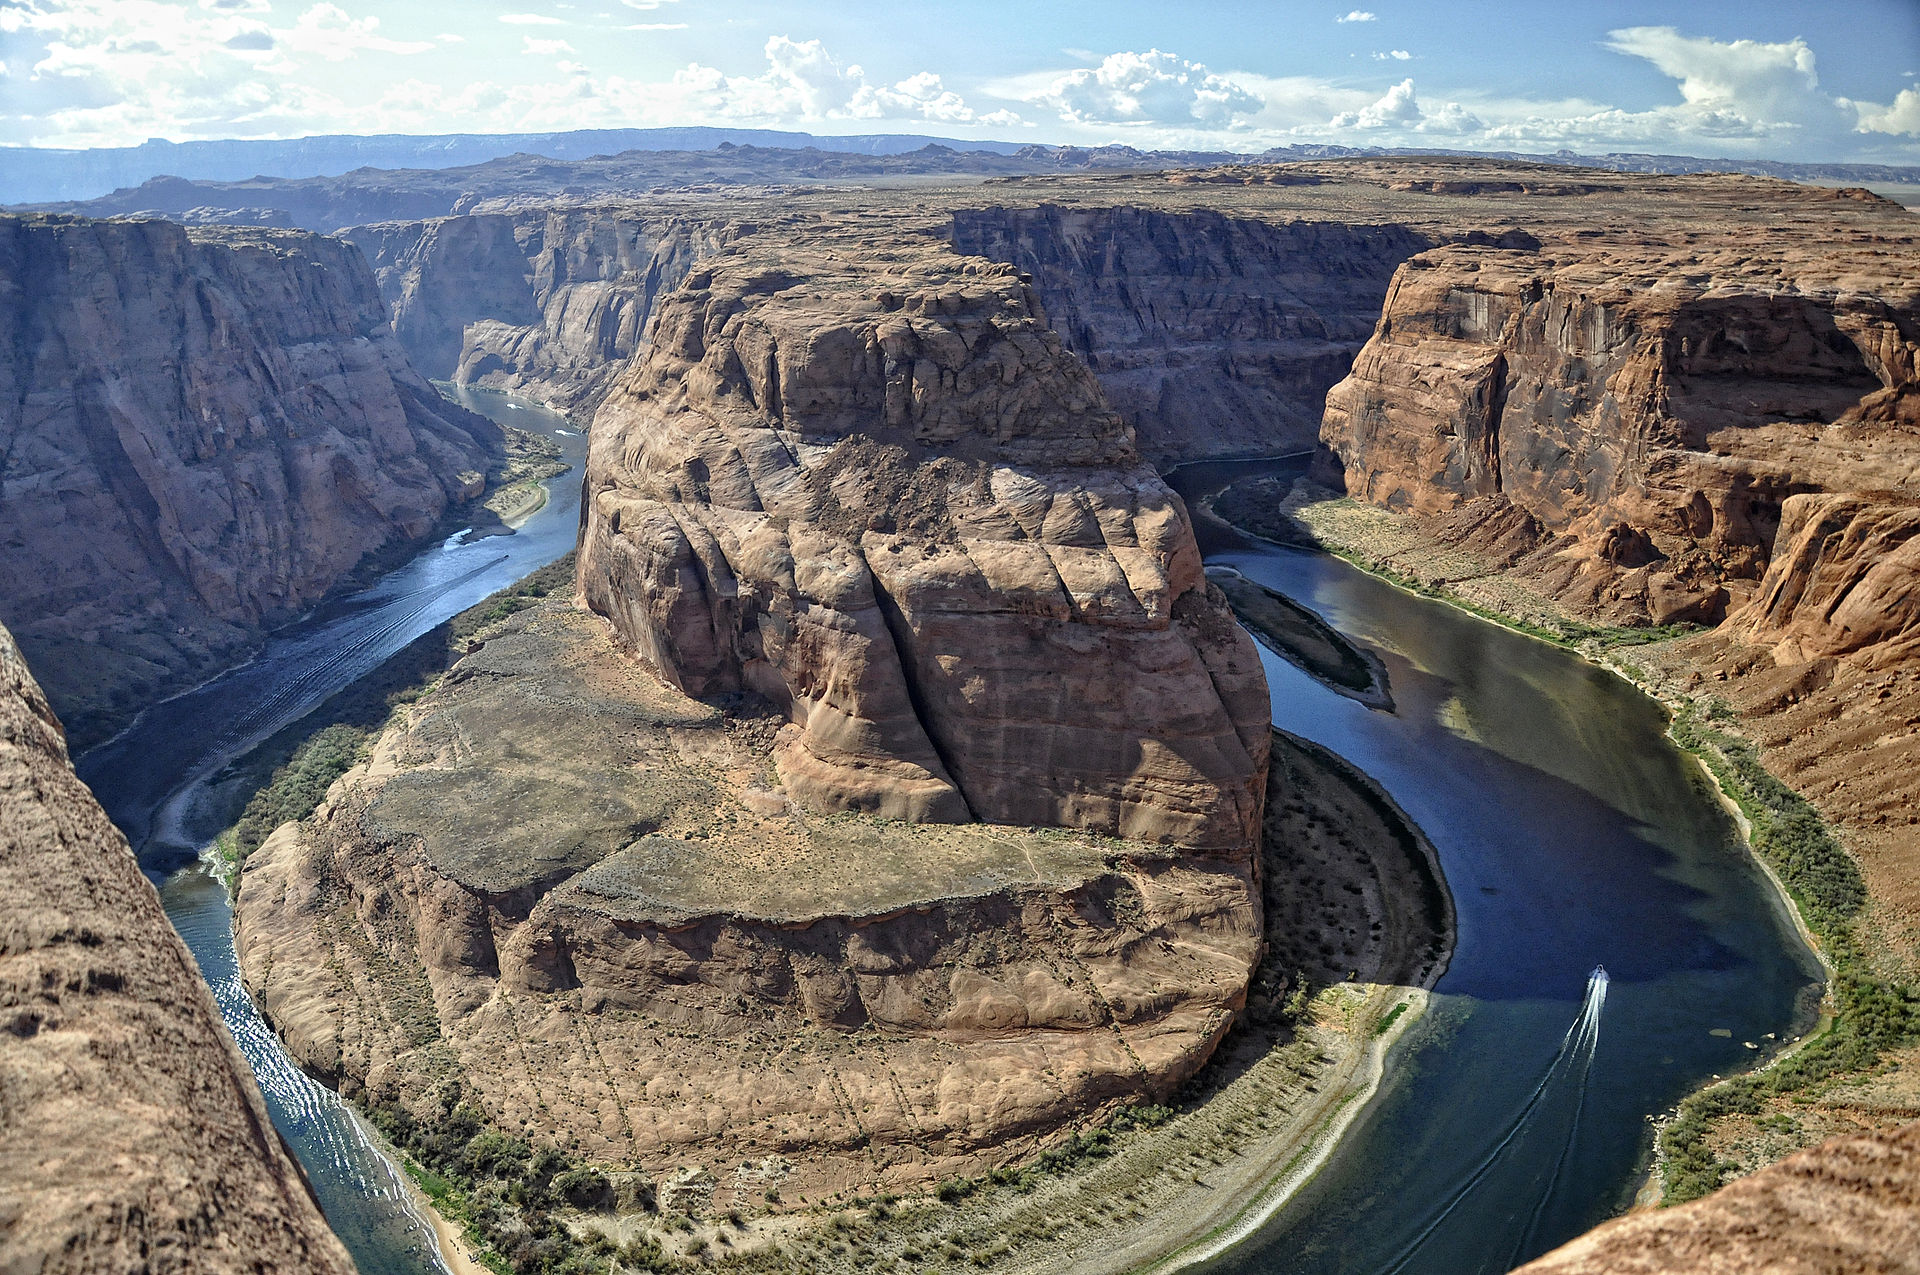 Horseshoe Bend, Colorado River, just upstream of the Grand Canyon. (image property of commons.wikimedia.org)